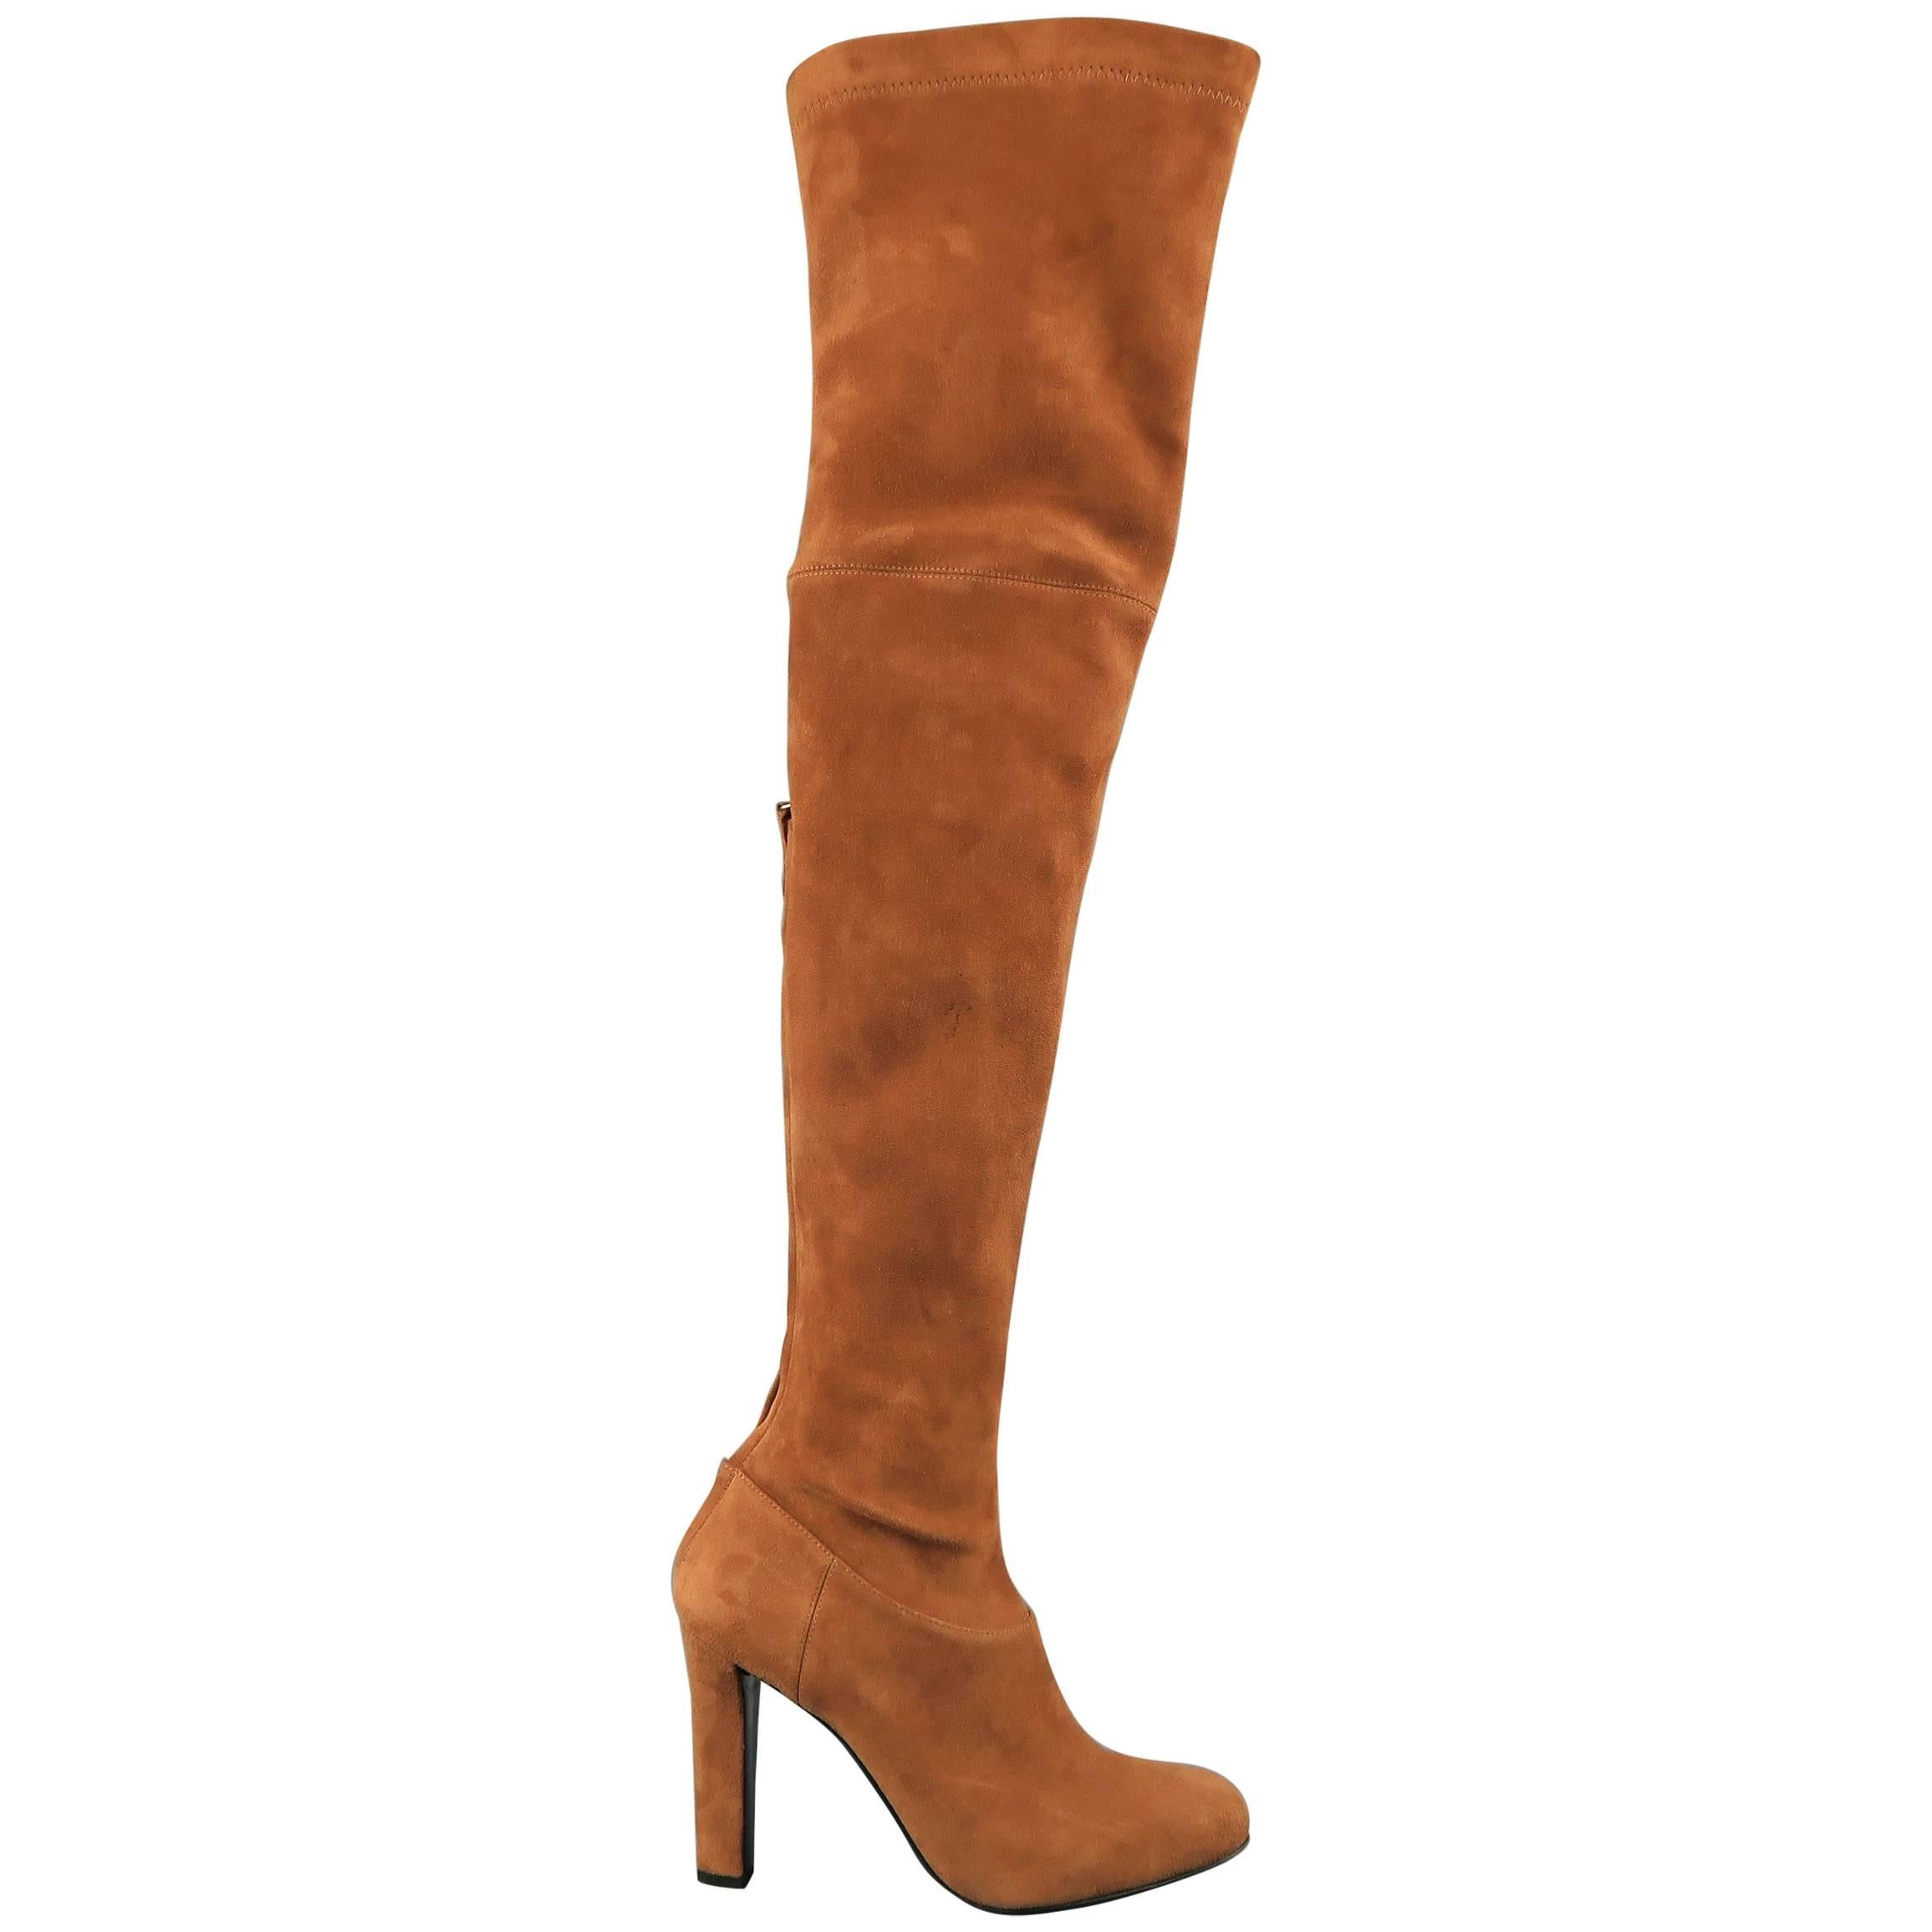 9 Tan Suede Thigh High Boots